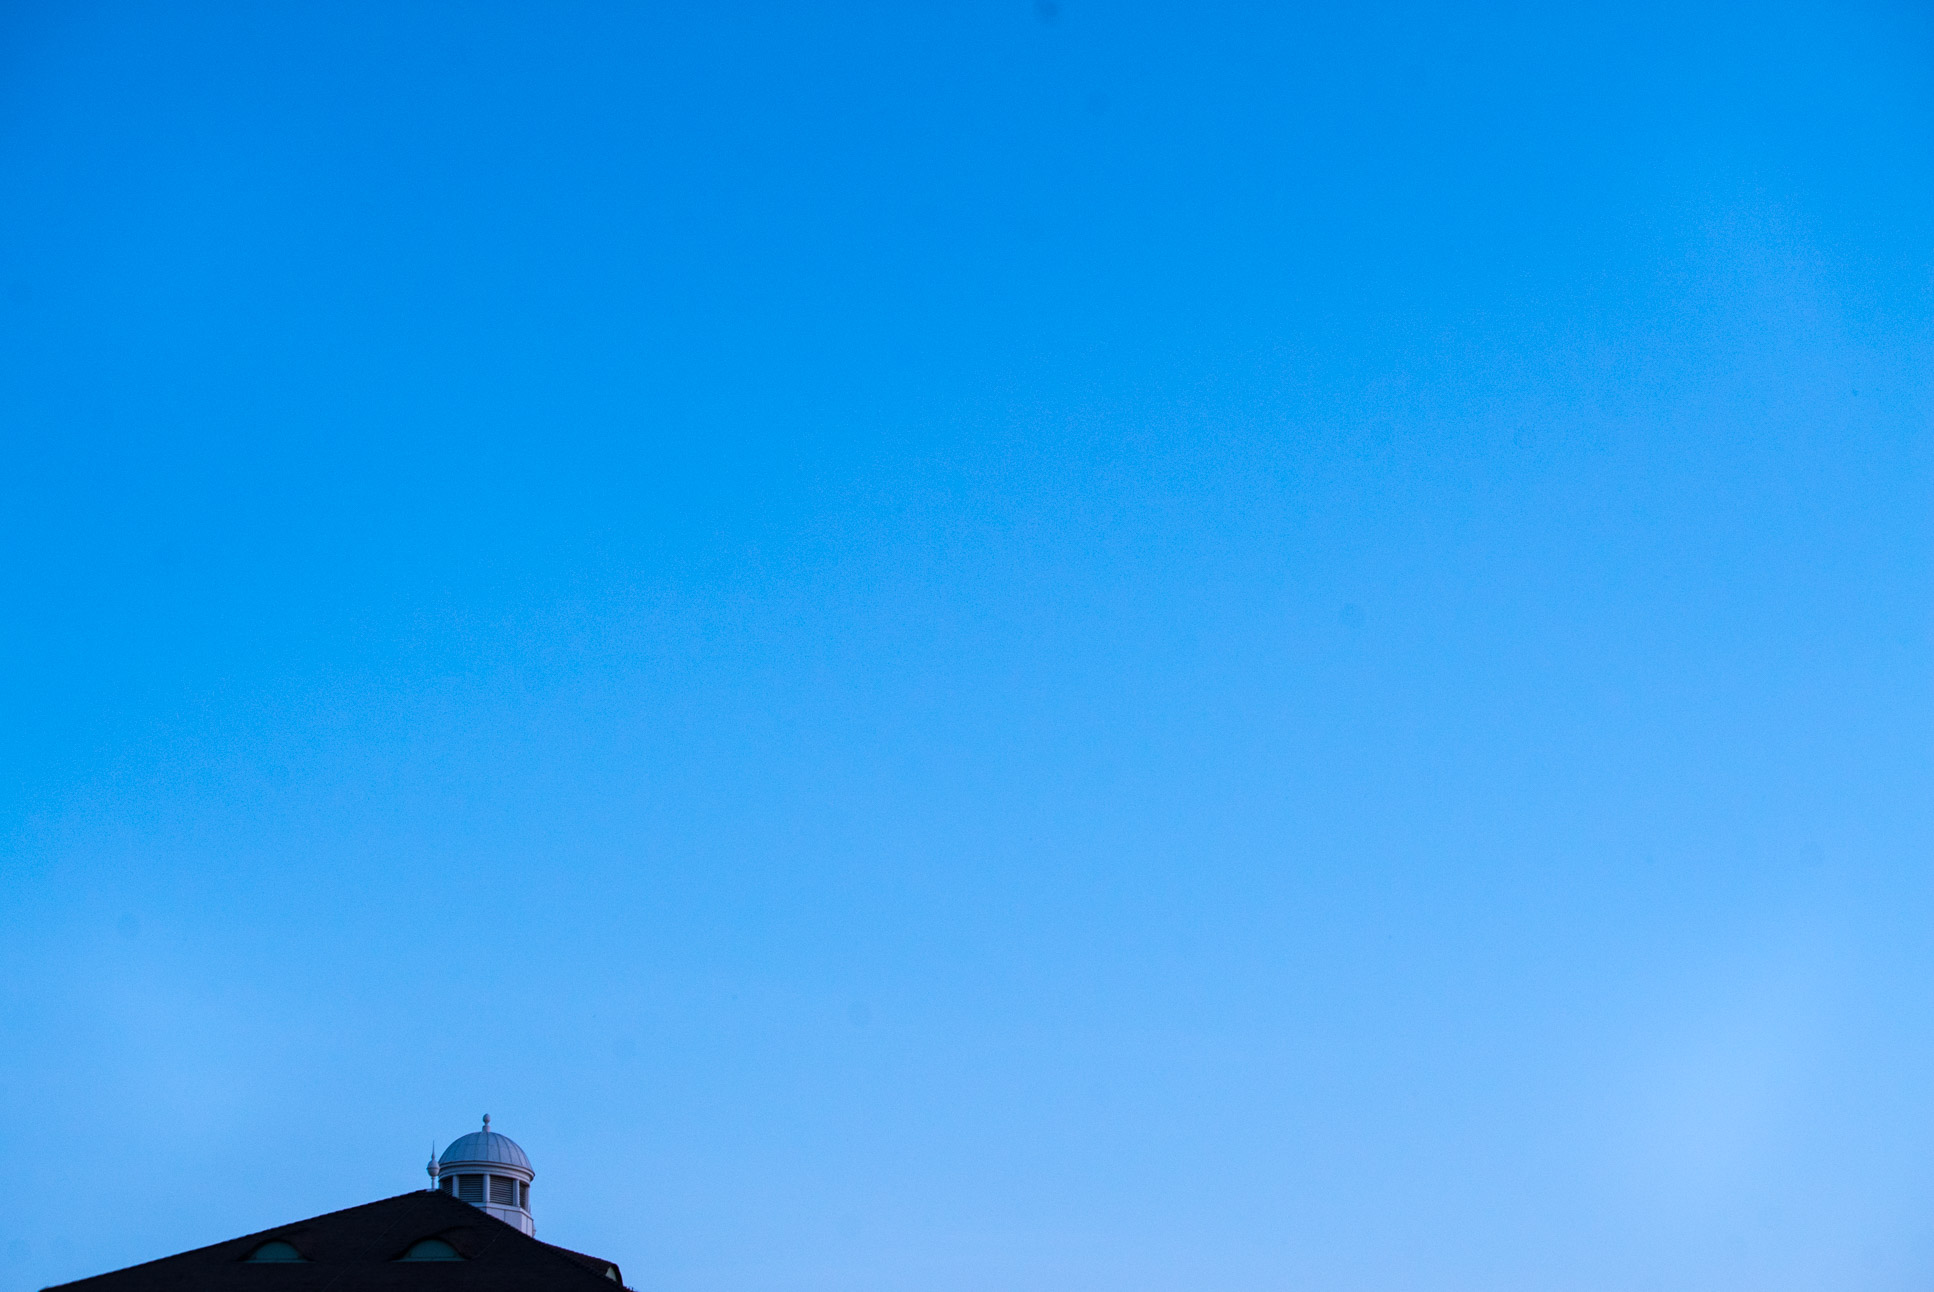 Photo by Pascal Sommer - Blue skies above Vienna